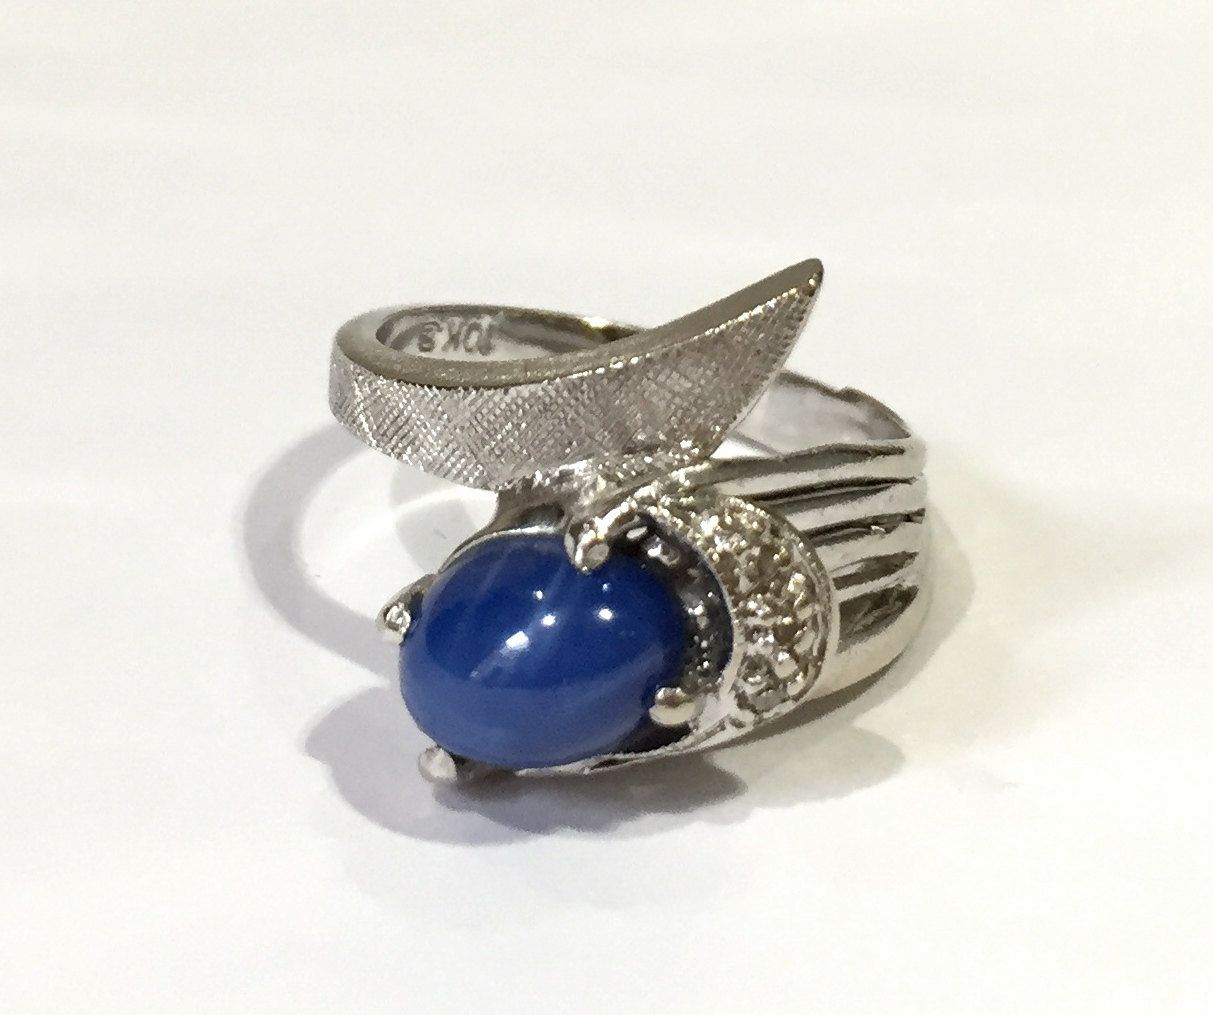 Vintage Linde Blue Star Sapphire Ring With Diamonds Oval Sapphire And Three Diamonds Set In 10k Star Sapphire Ring Blue Star Sapphire Blue Star Sapphire Ring